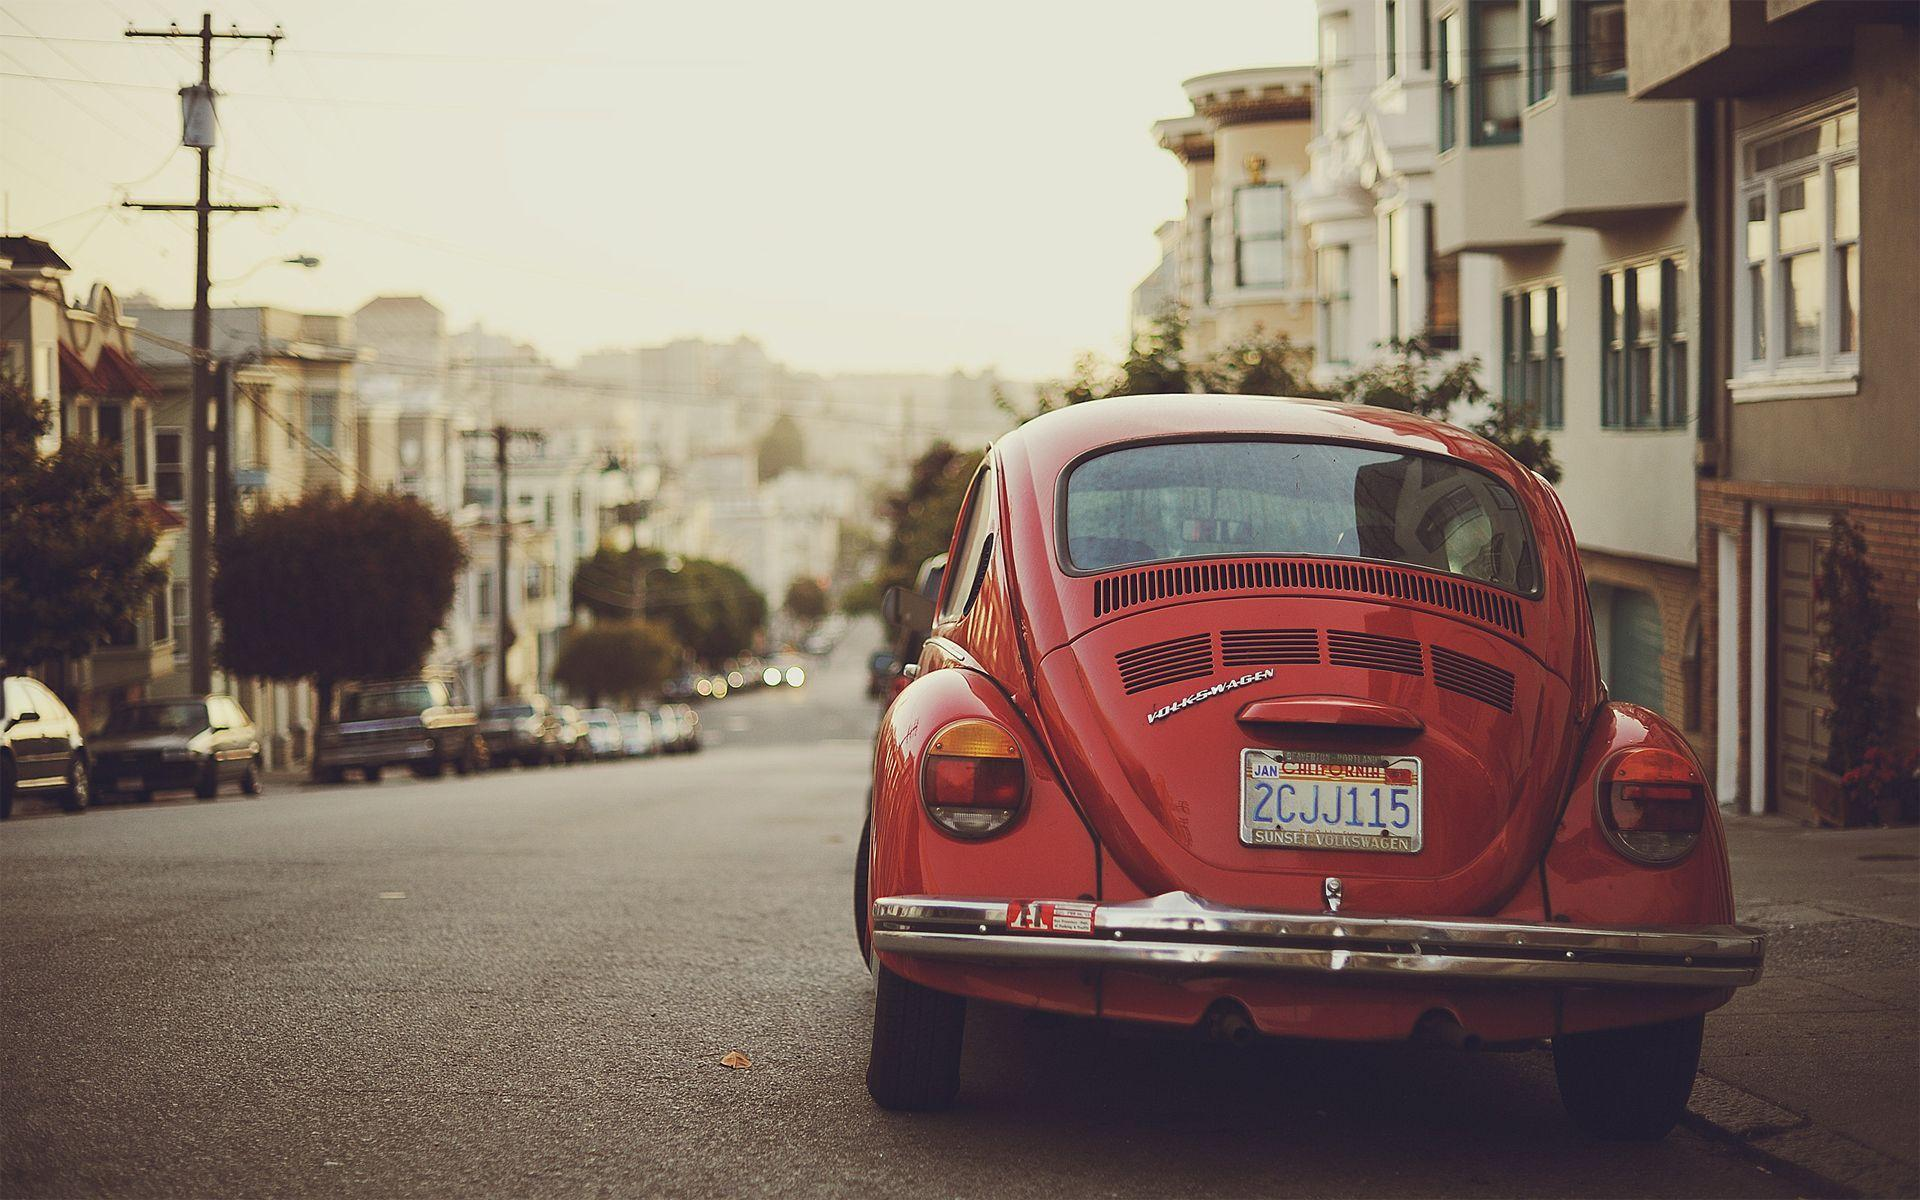 Volkswagen Beetle image vw beetle HD wallpapers and backgrounds